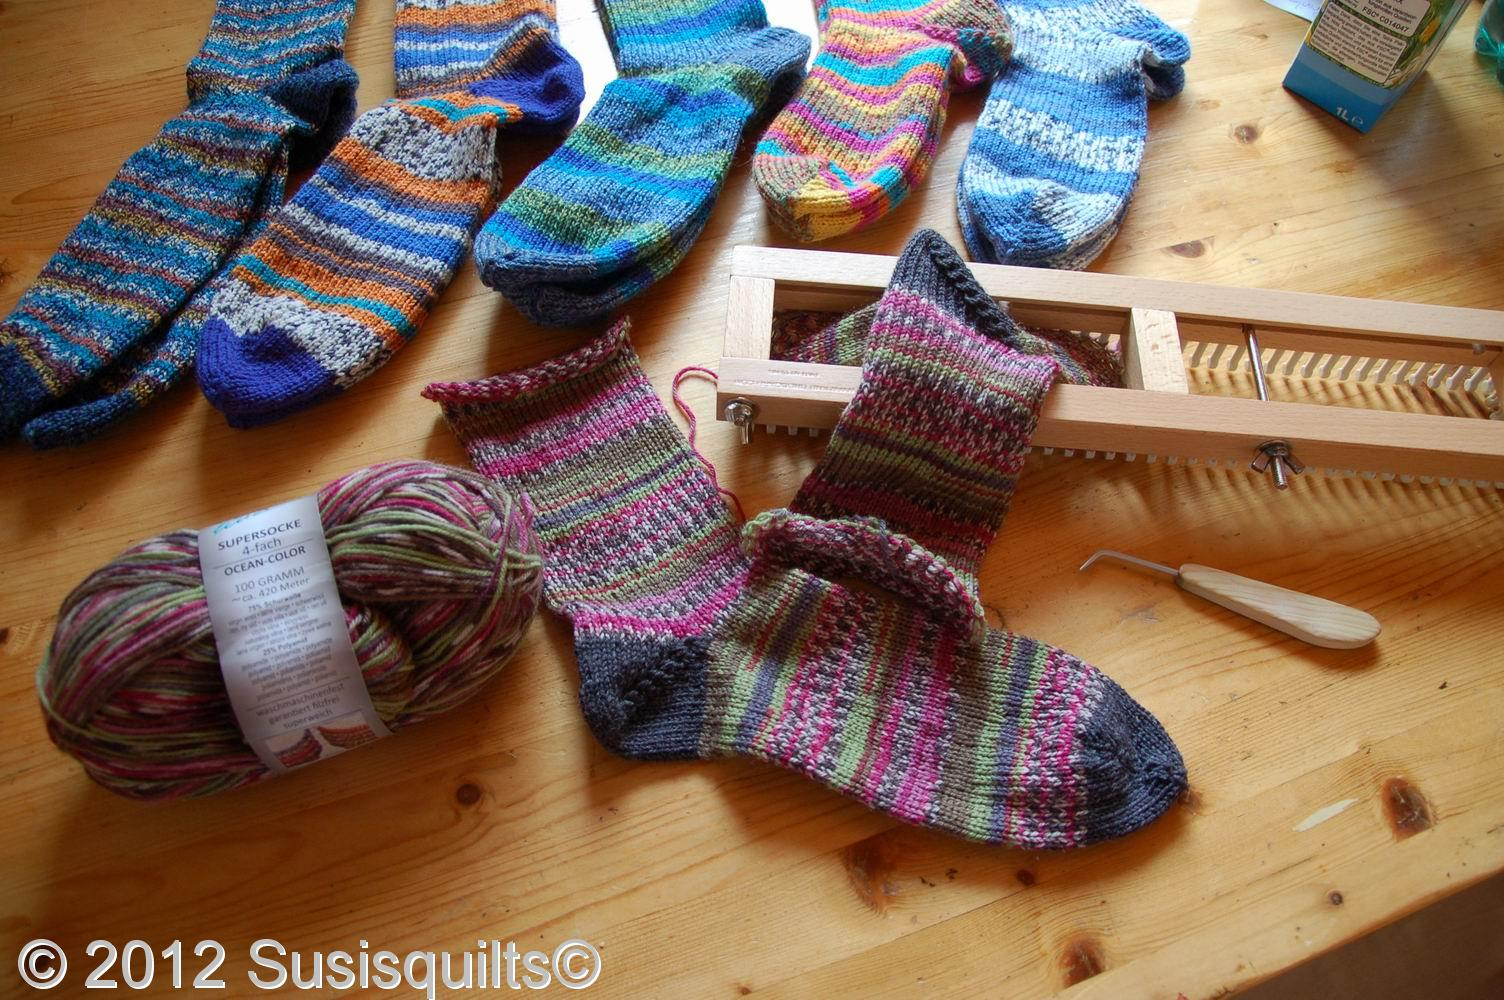 susis quilts: knitting loom